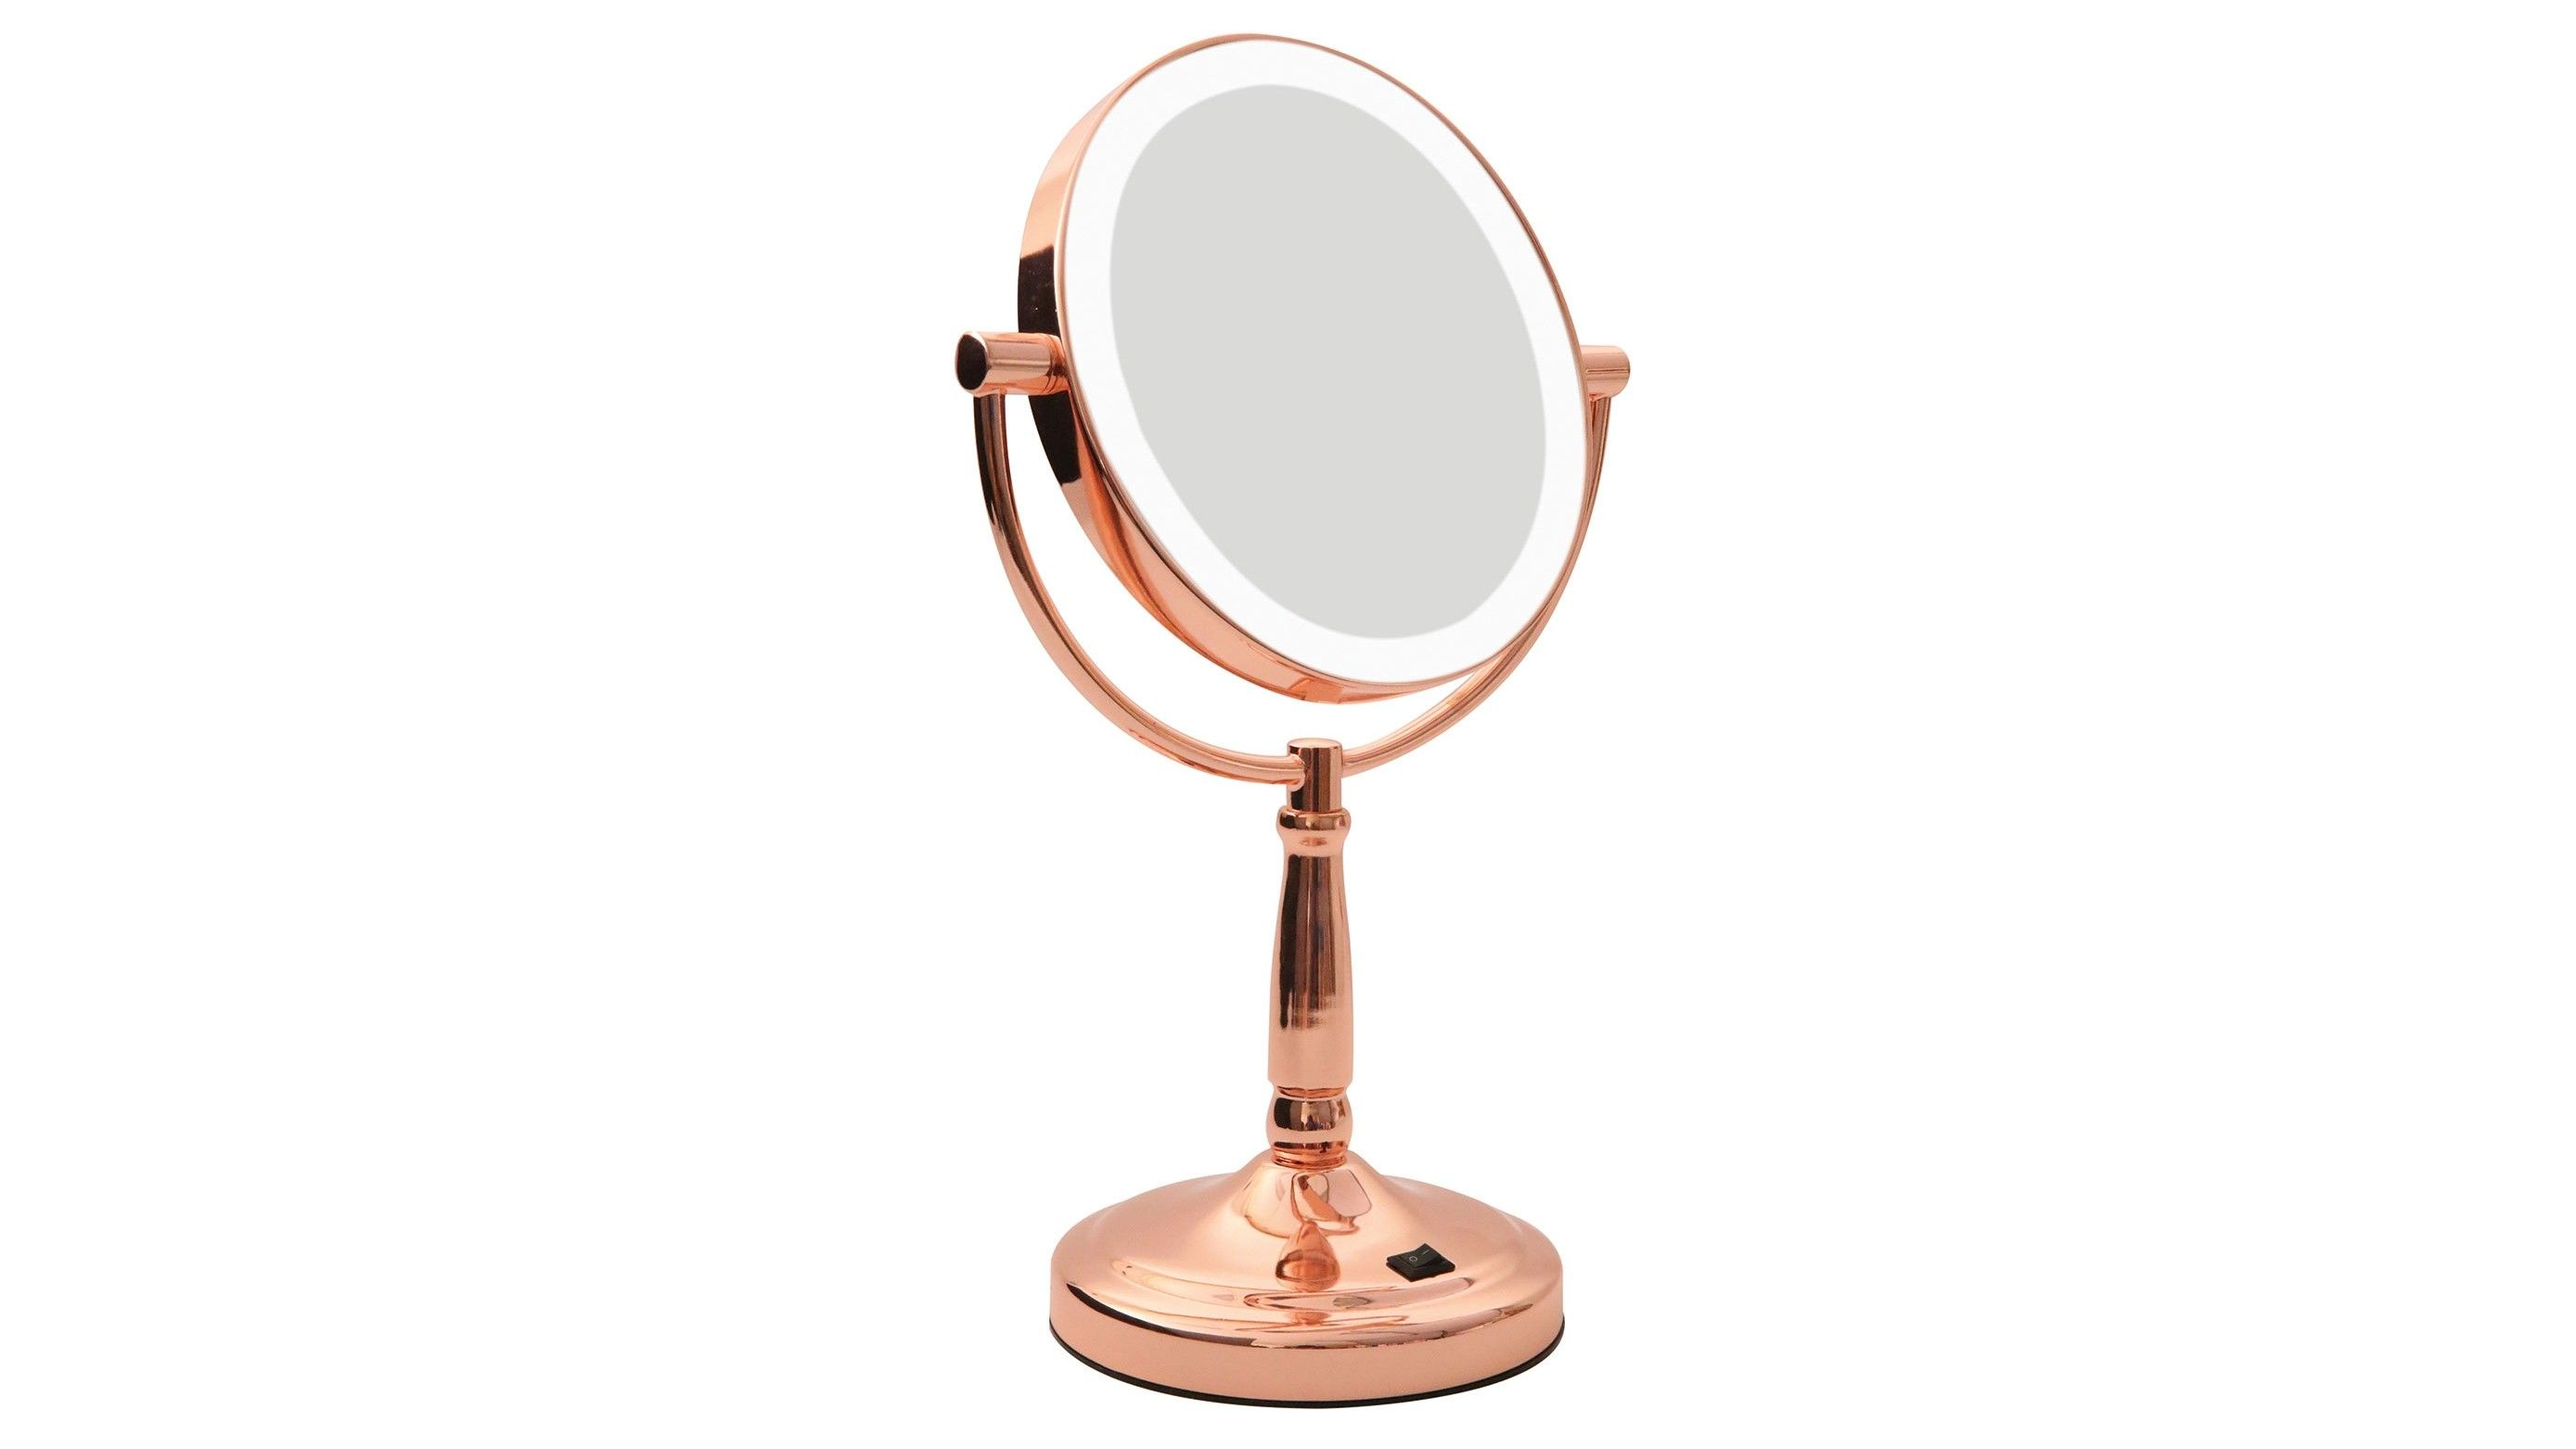 Rose Gold Lighted Makeup Mirror Gnubies Org